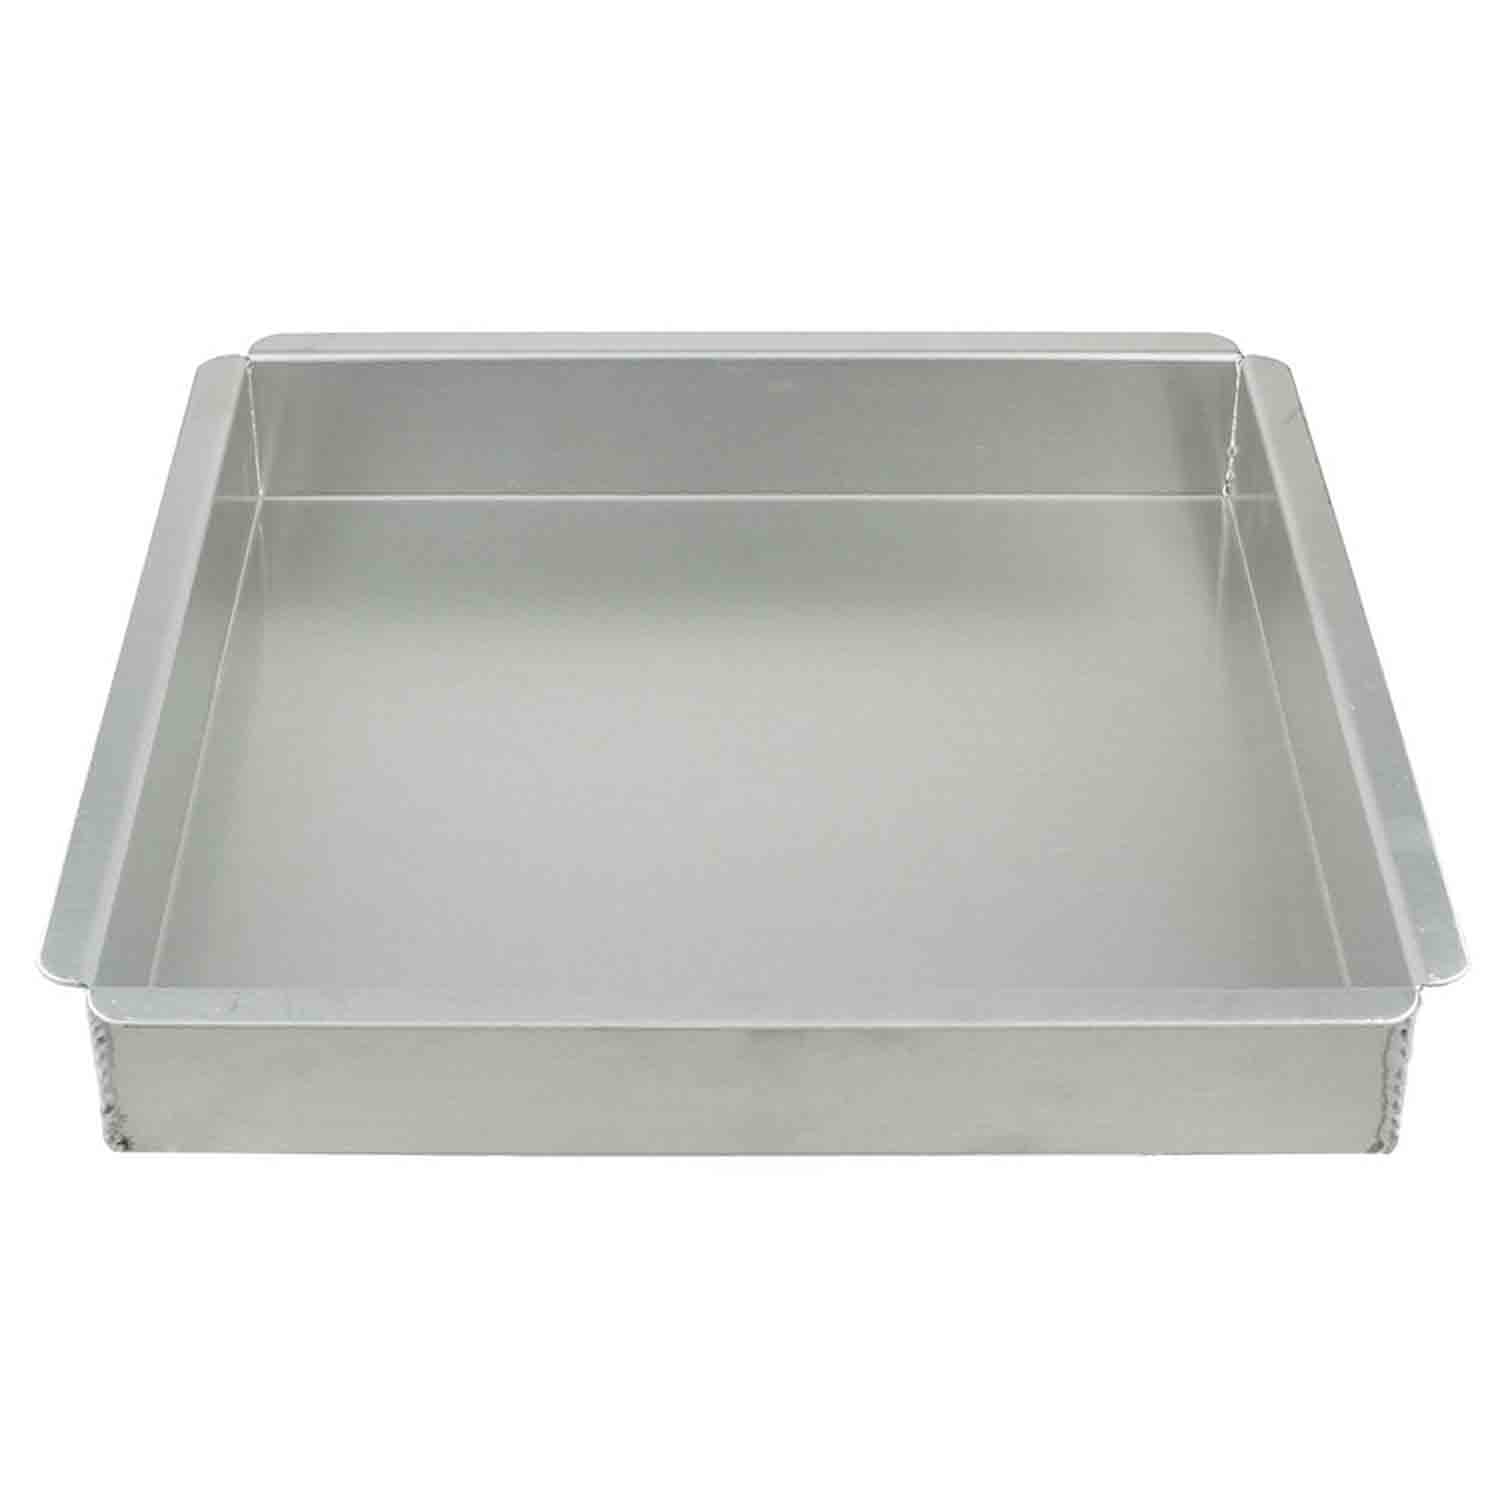 "12 x 2"" Magic Line Square Cake Pan"